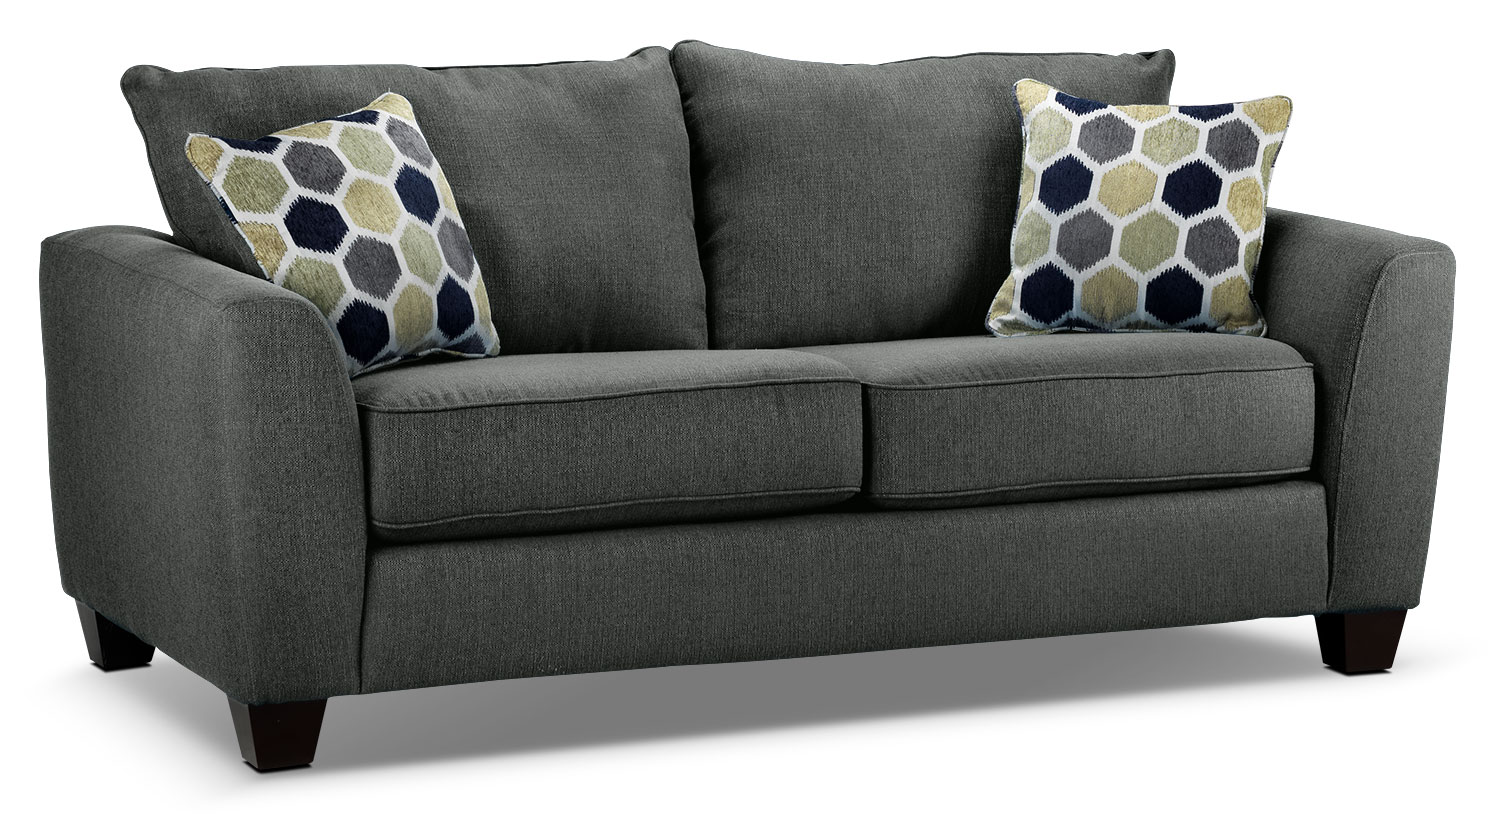 Living Room Furniture - Heritage Loveseat - Grey